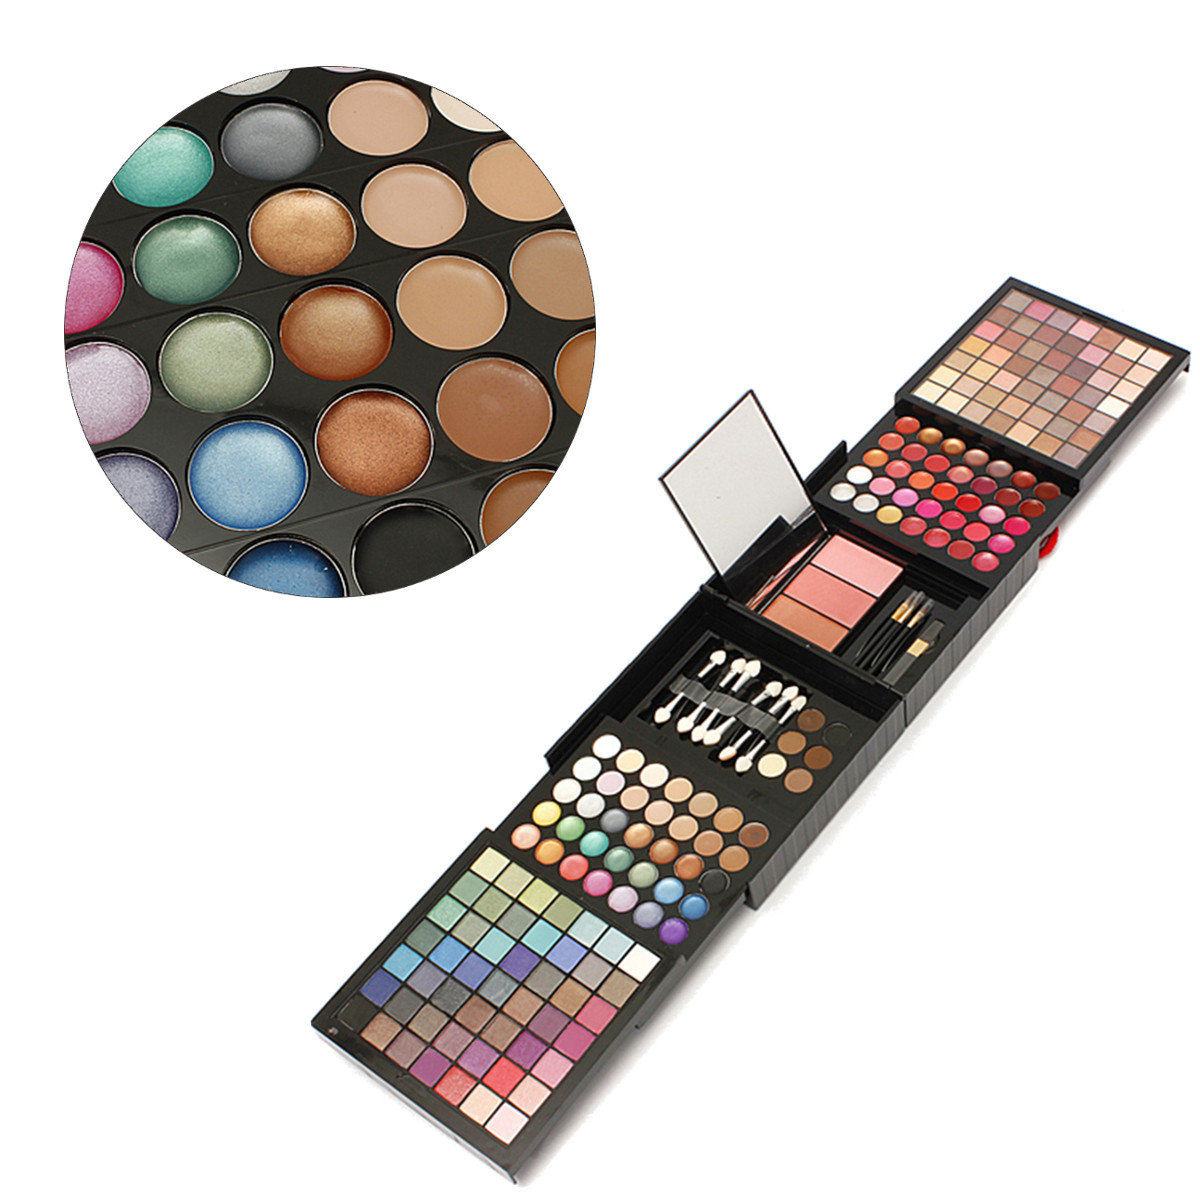 Professional Makeup Palette Set Eye Shadow Blusher Powder Concealer Lip Brow Cosmetic 177 Colors